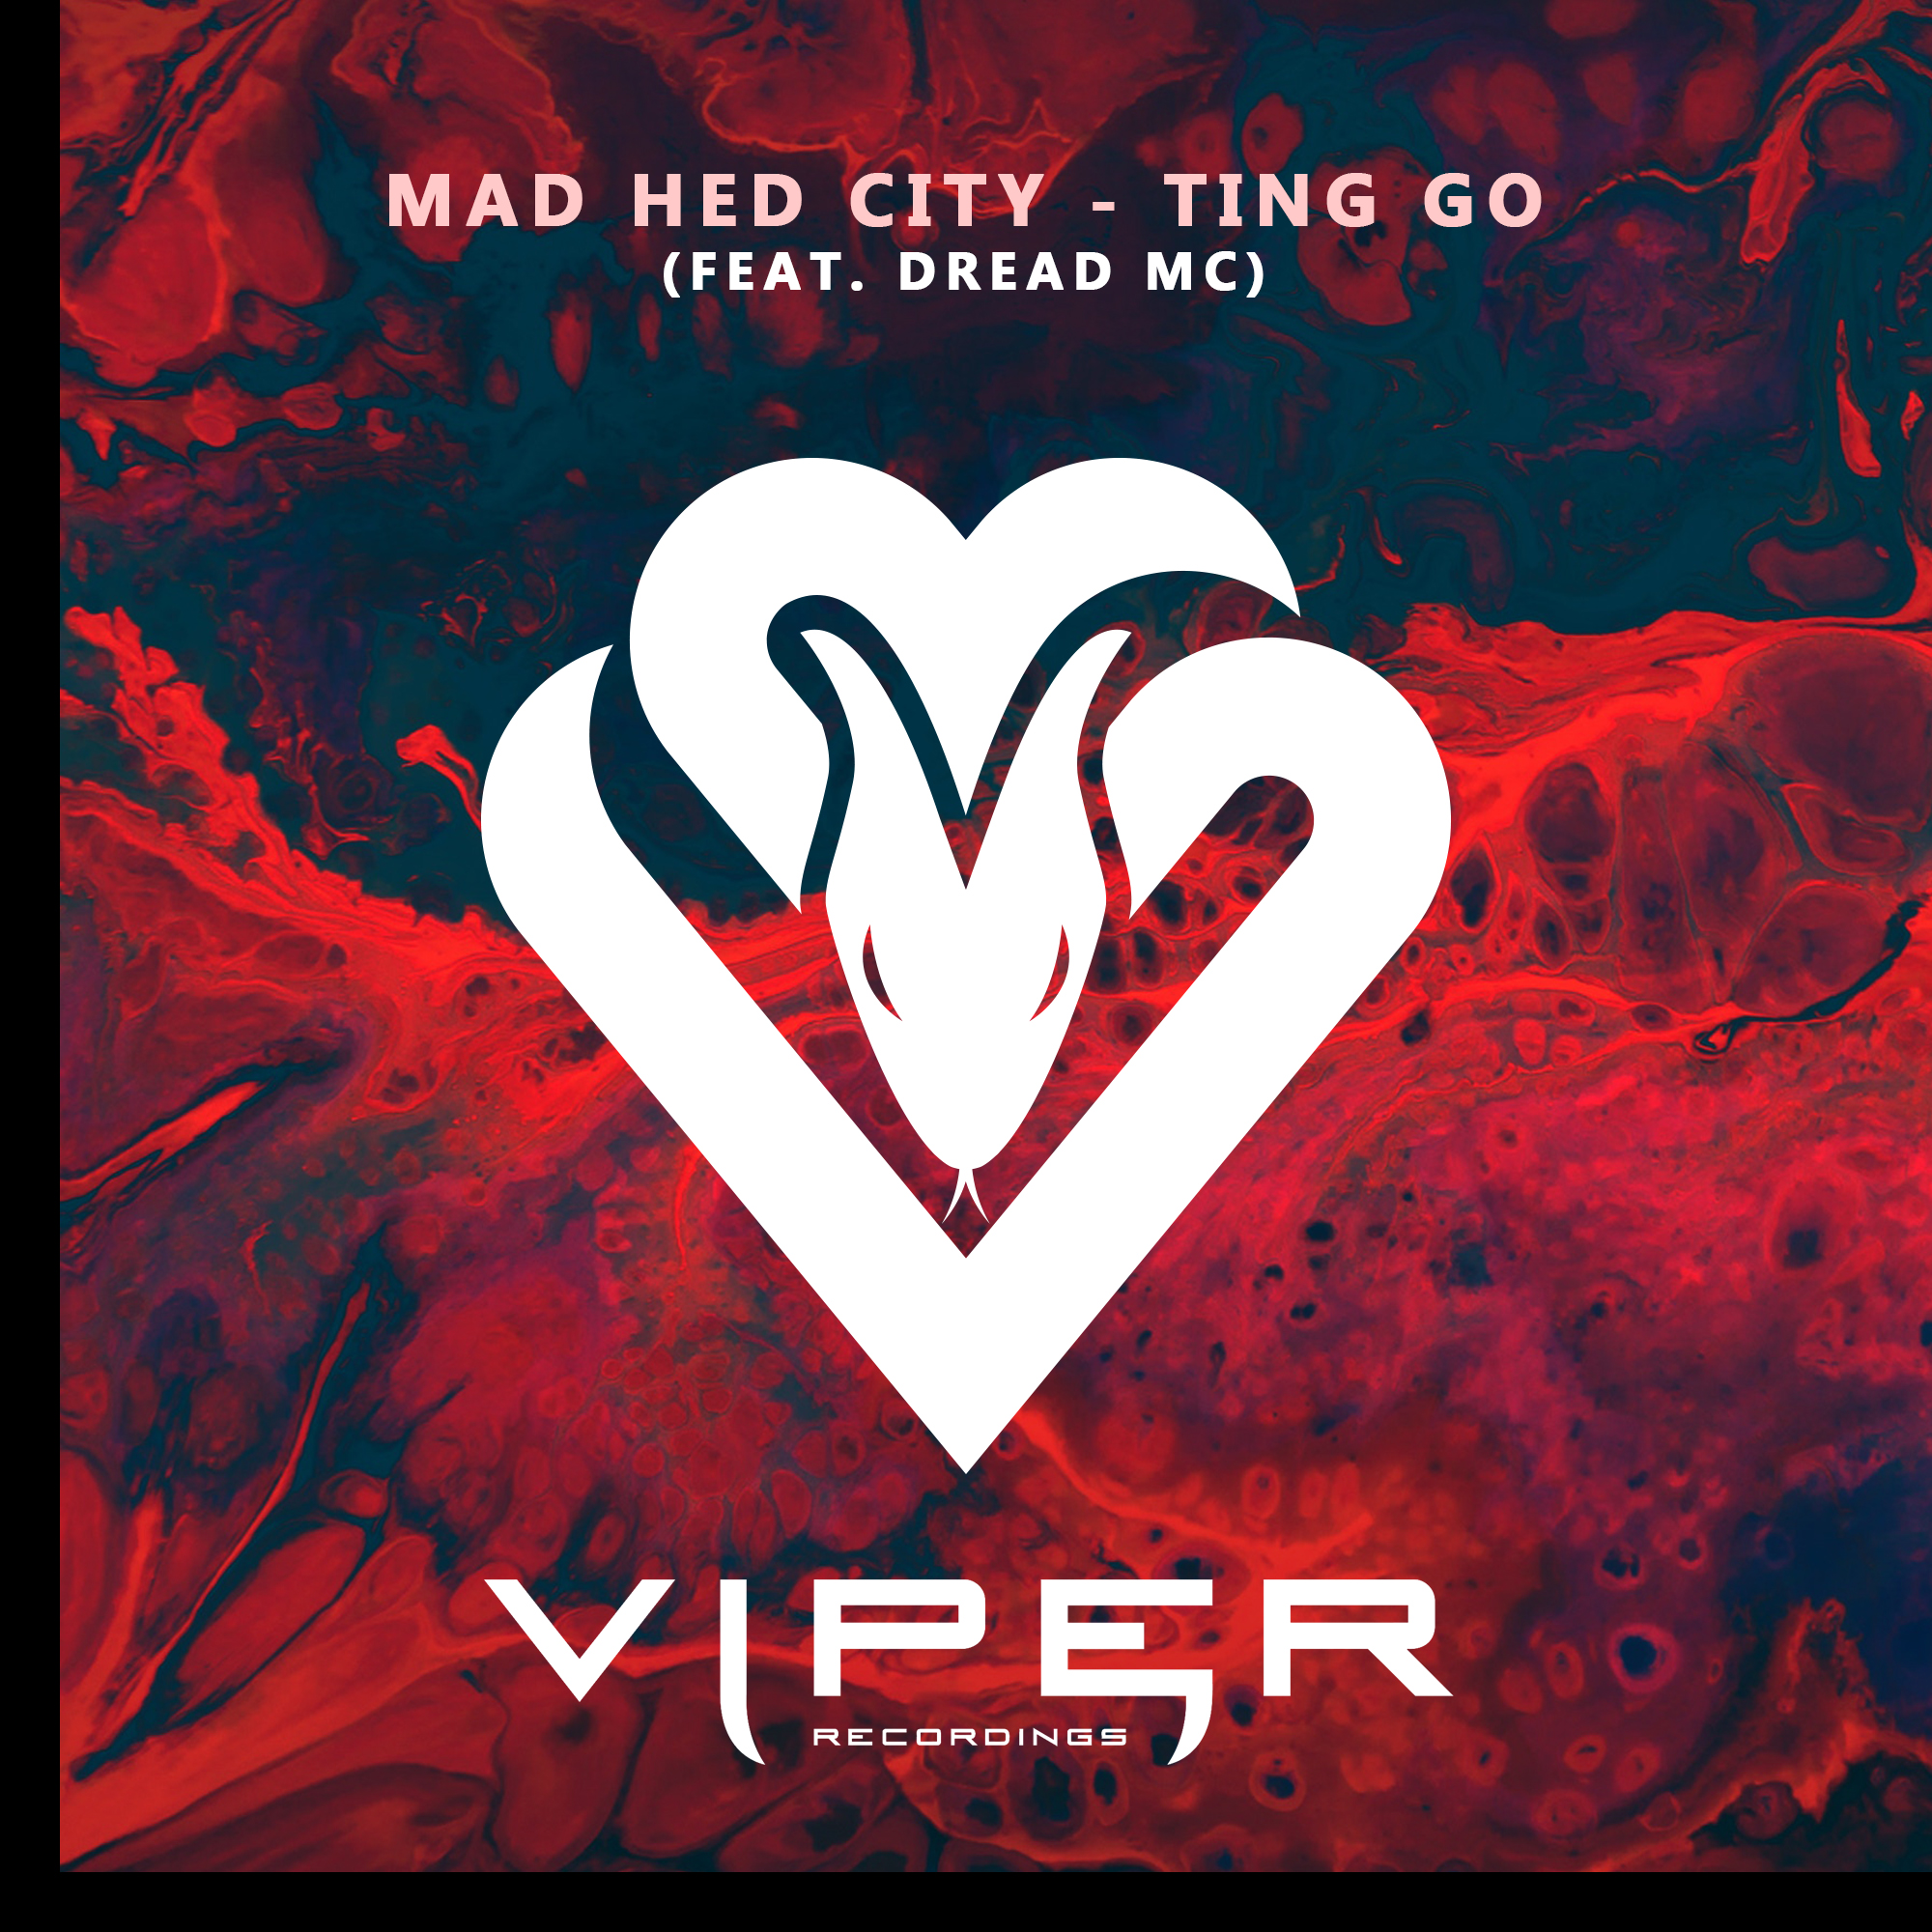 MAD HED CITY FEAT. DREAD MC - TING GO (PLUS REMIXES FROM GIGANTI & JEFF NANG) [VPR177]